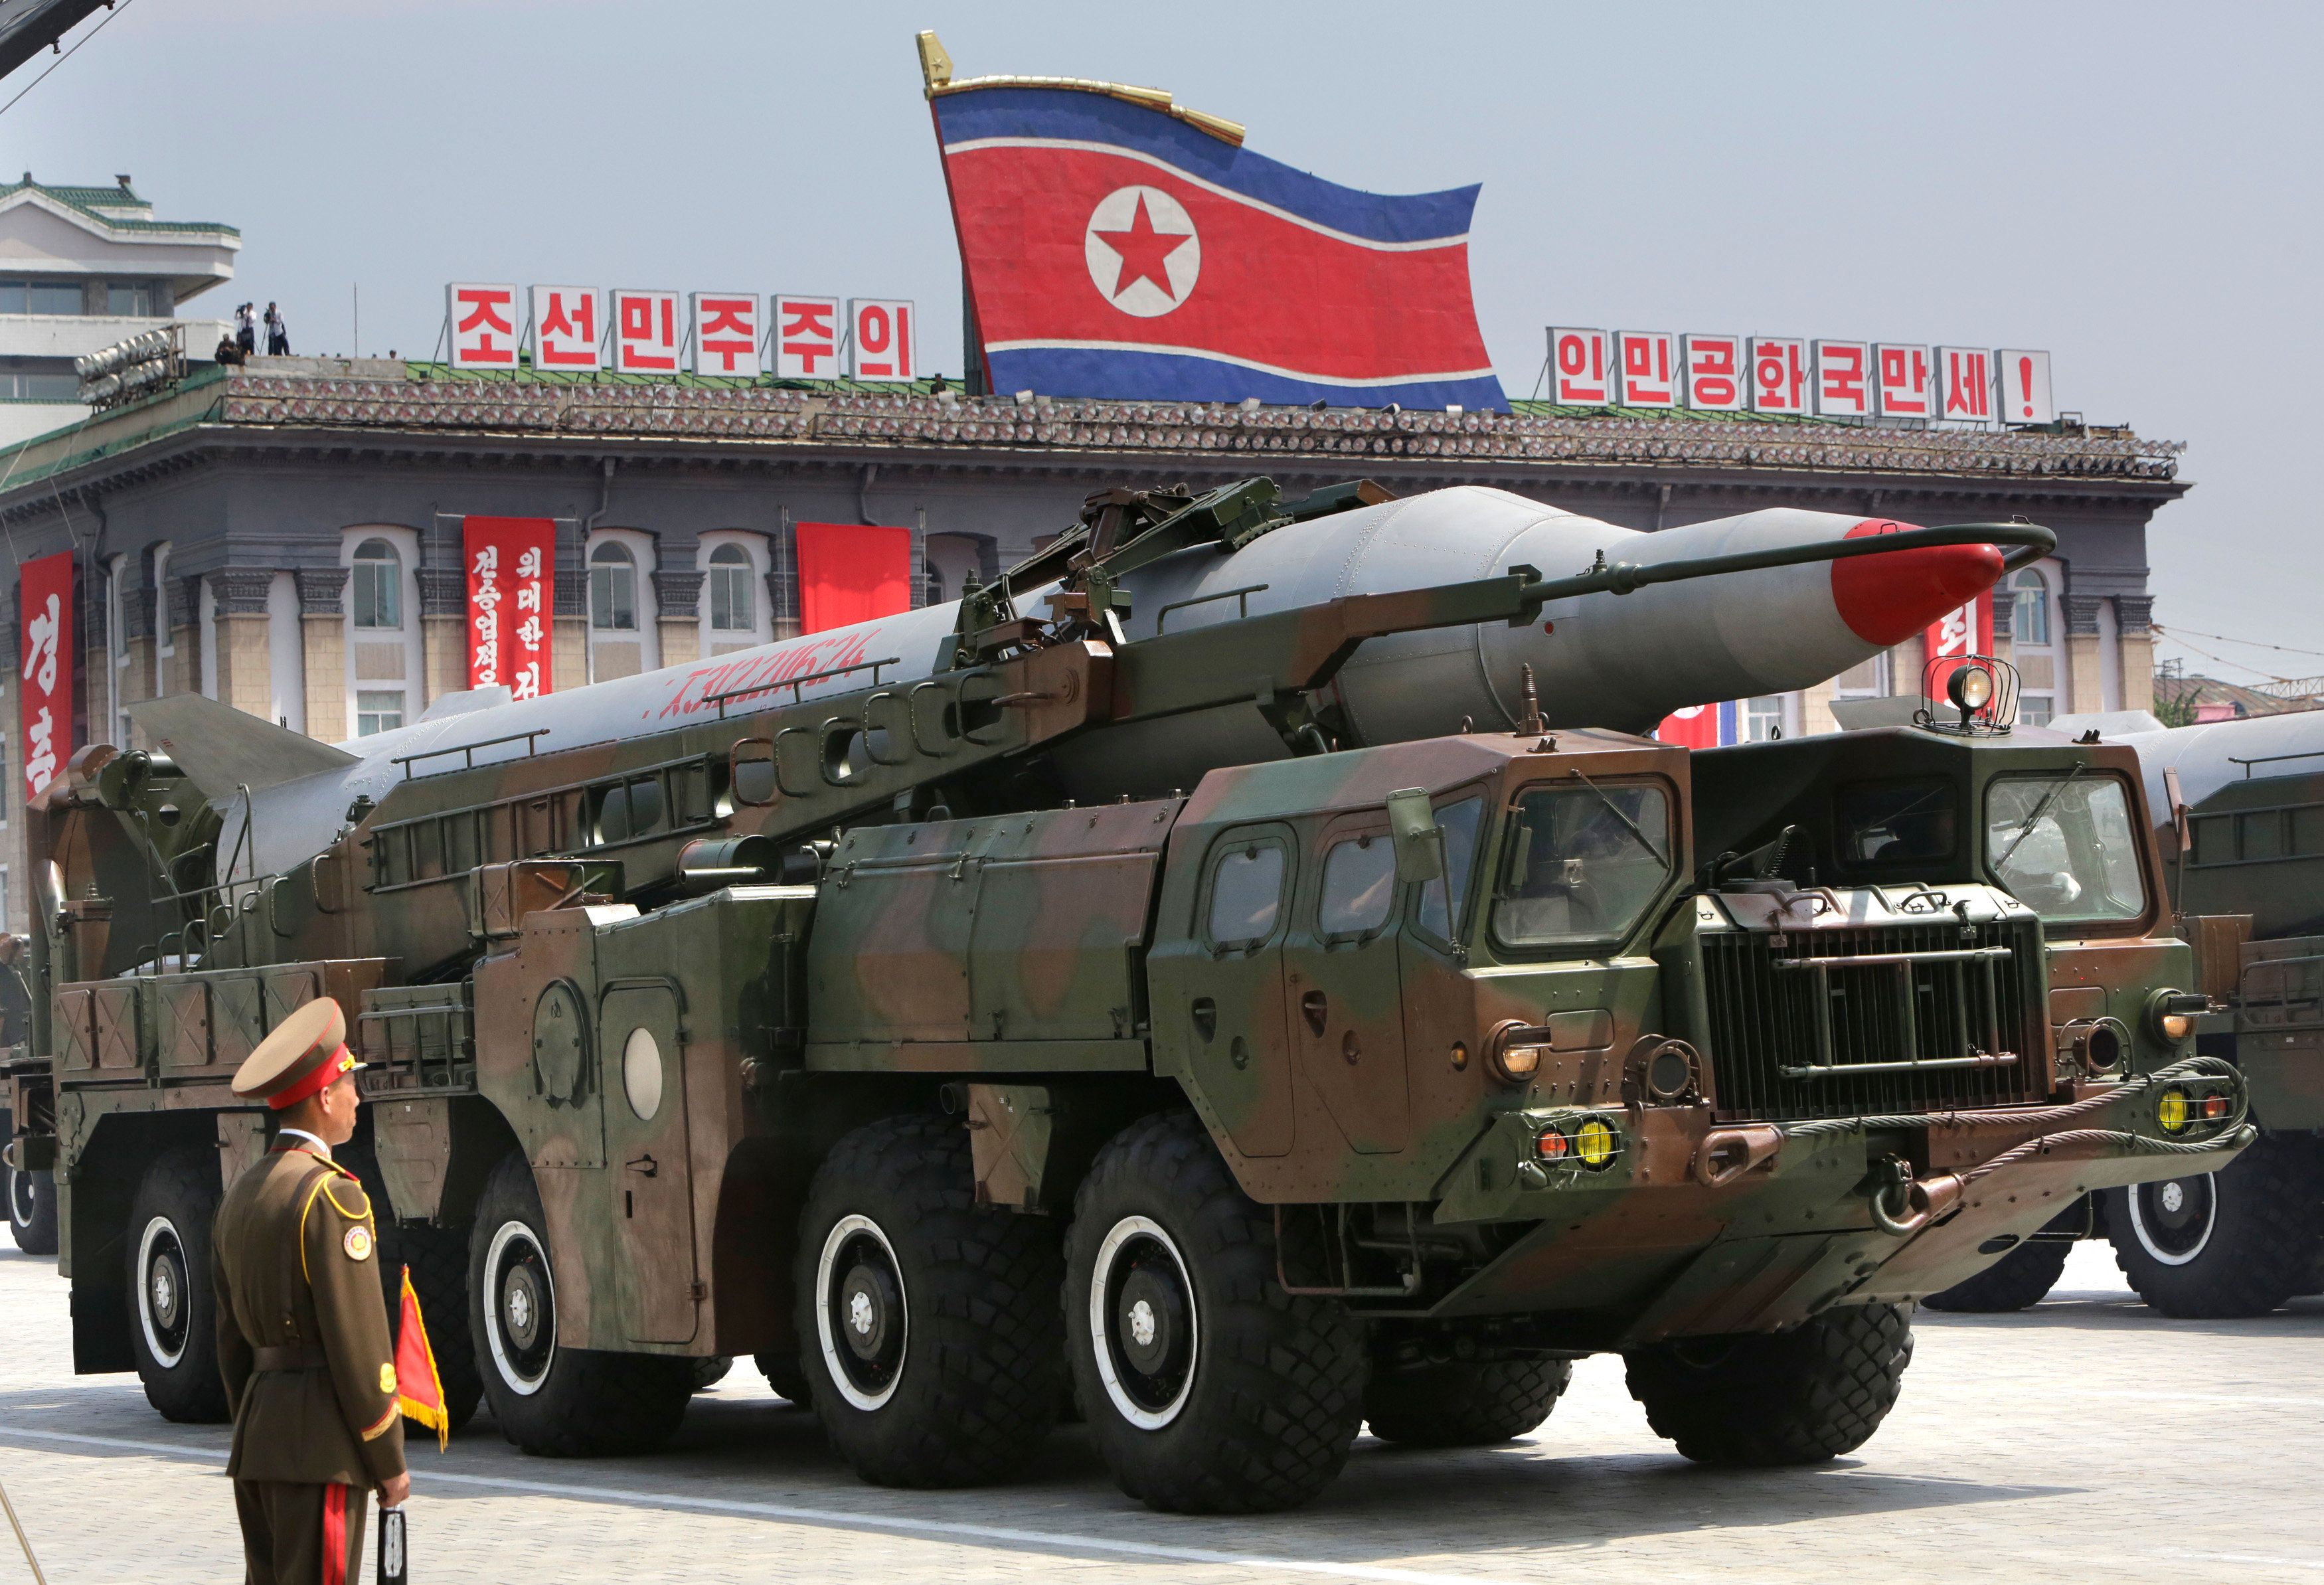 A missile is carried by a military vehicle during a parade to commemorate the 60th anniversary of the signing of a truce in the 1950-1953 Korean War, at Kim Il-sung Square in Pyongyang July 27, 2013. REUTERS/Jason Lee (NORTH KOREA - Tags: POLITICS MILITARY ANNIVERSARY)